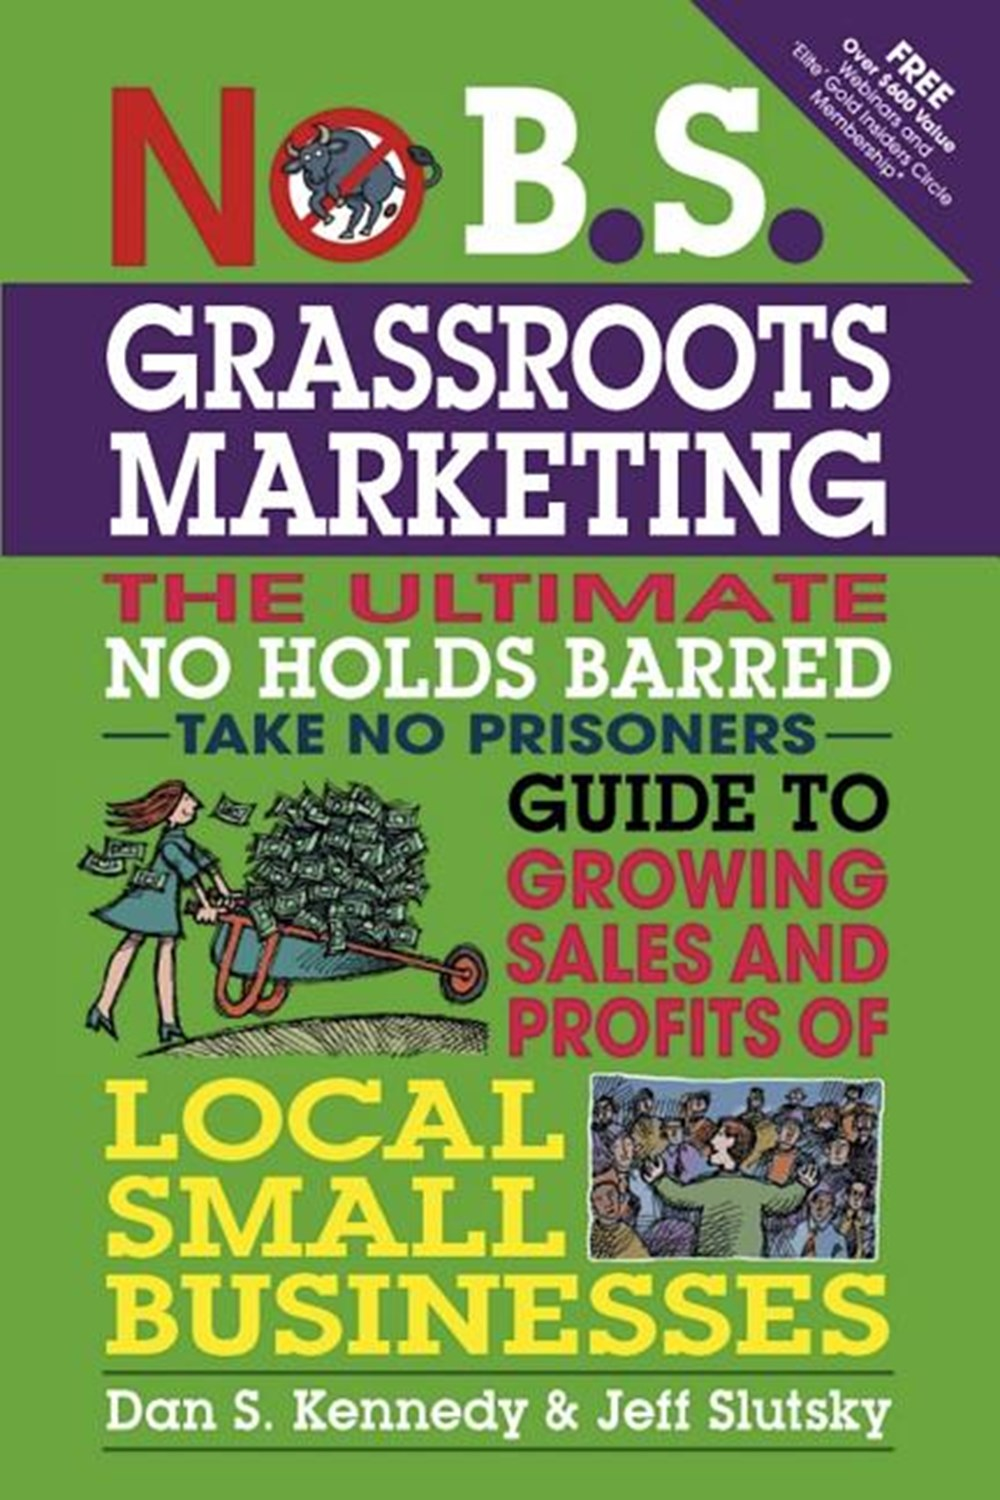 No B.S. Grassroots Marketing: The Ultimate No Holds Barred Take No Prisoner Guide to Growing Sales a